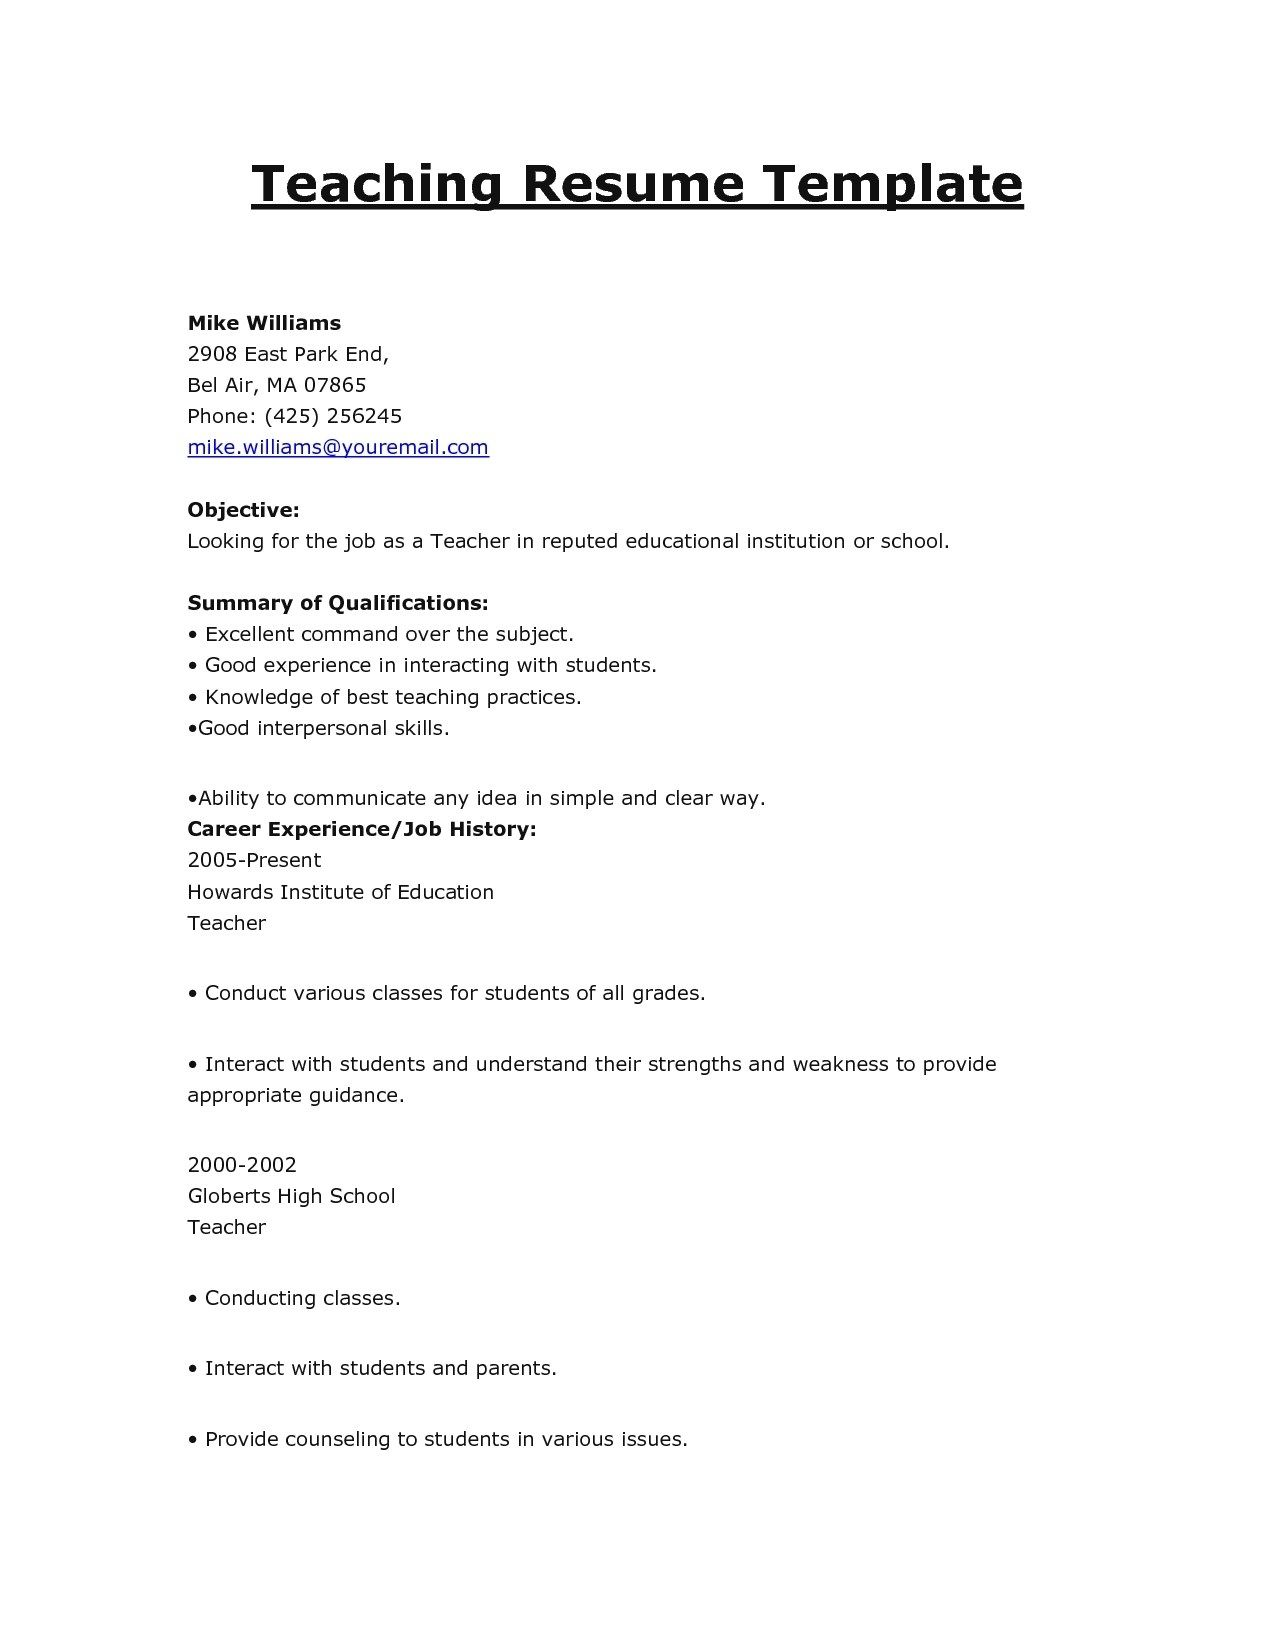 Free Resume Templates Online Resume Builder Online Free Download Skylogic Saves You Money And